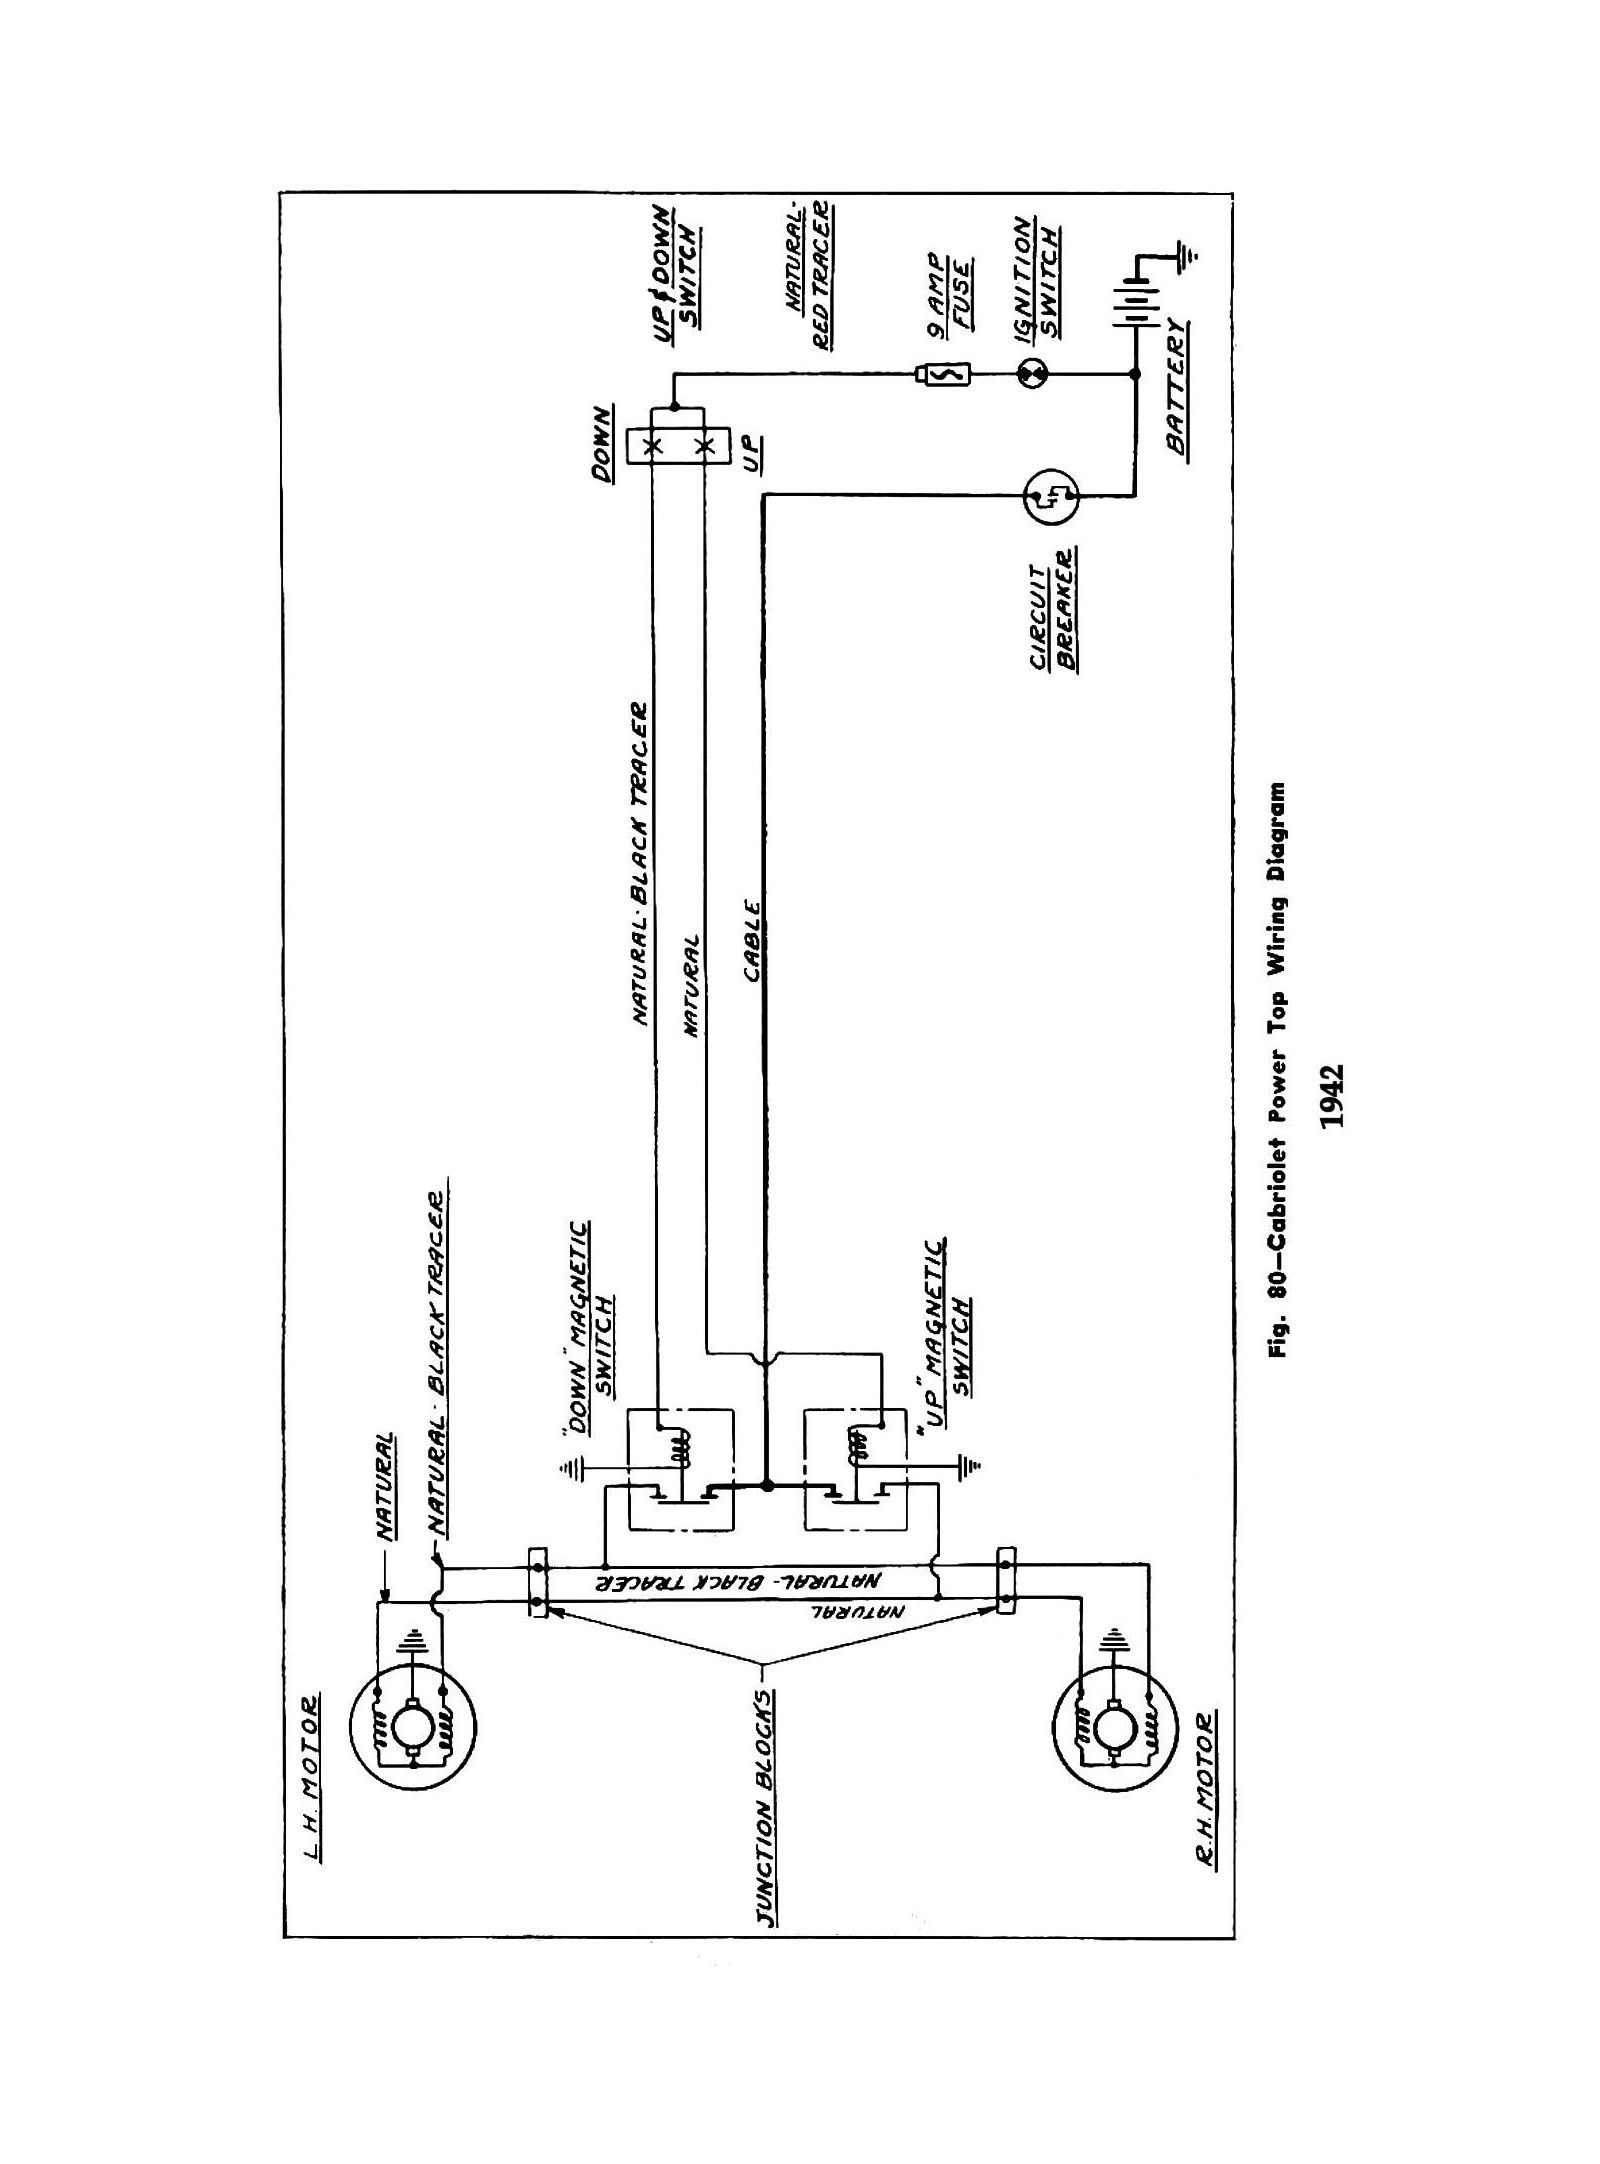 222366837849 additionally Ford 8n Ignition Wiring Diagram Electrical Diagrams Of Mustang Coil together with Catalog3 also Steering Suspension Diagrams in addition 44. on 1955 chevy truck wiring diagram